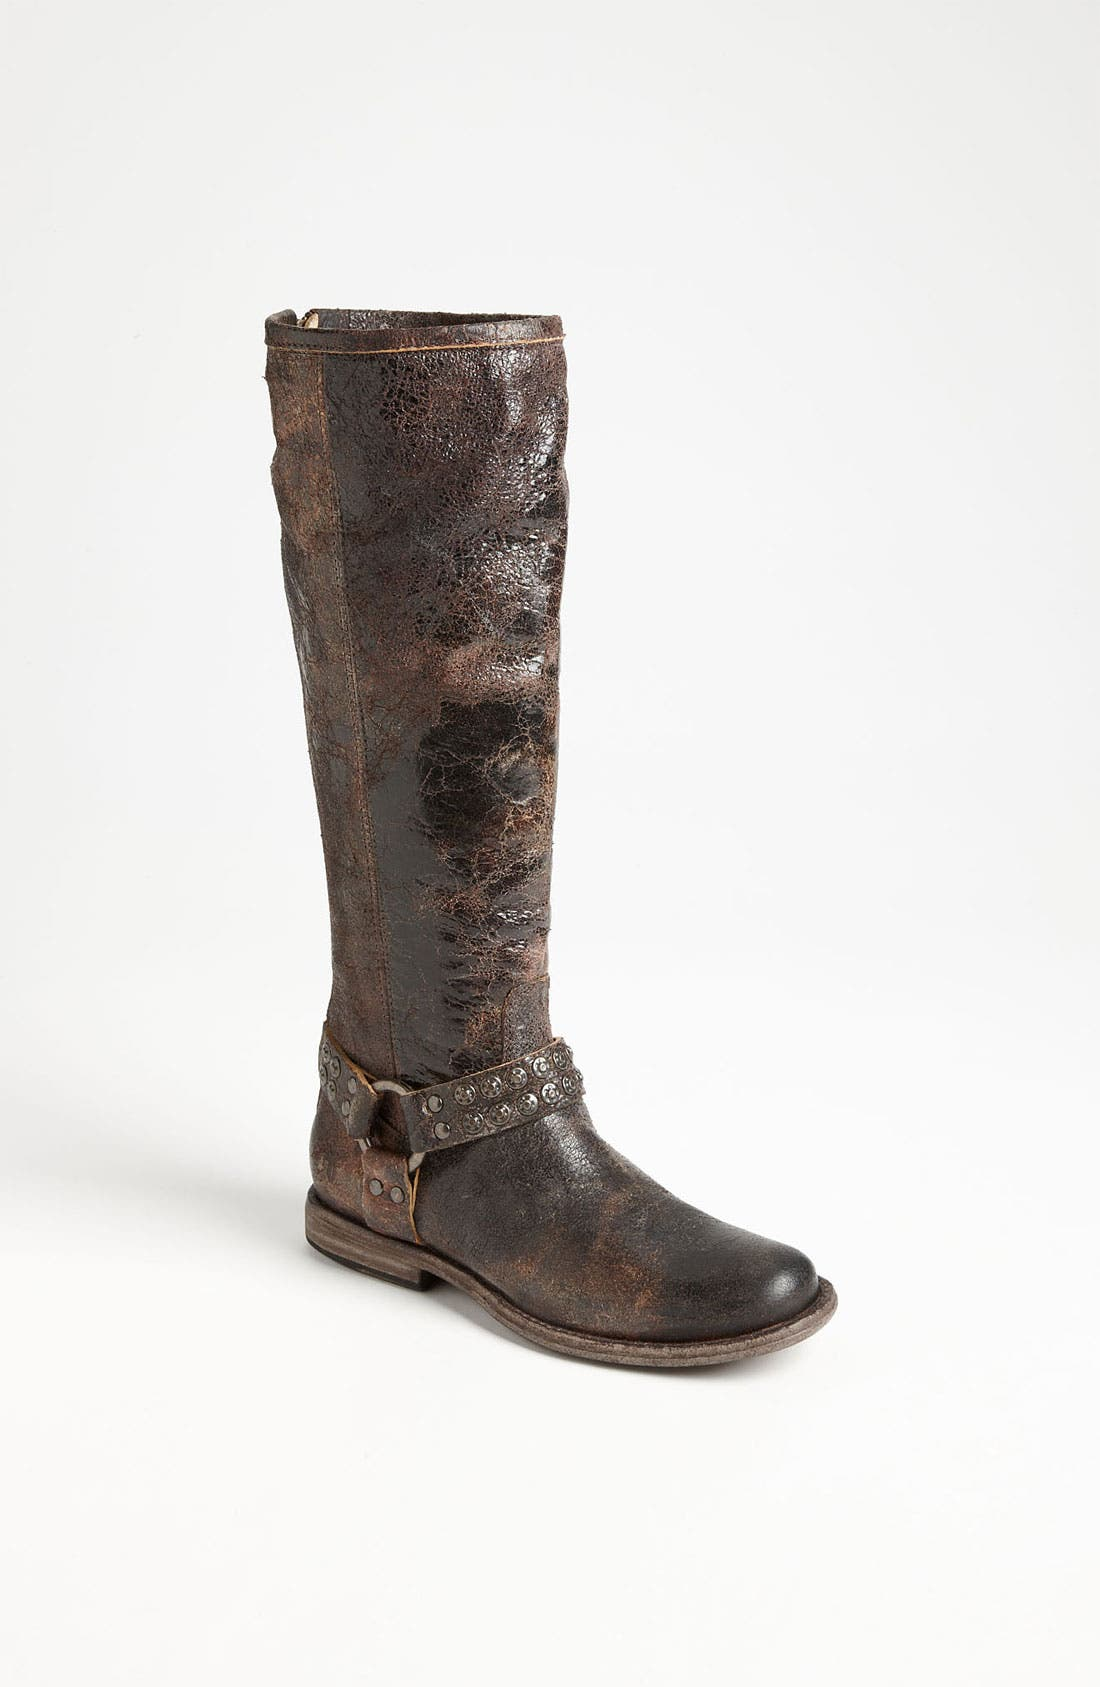 Alternate Image 1 Selected - Frye 'Phillip' Studded Harness Boot